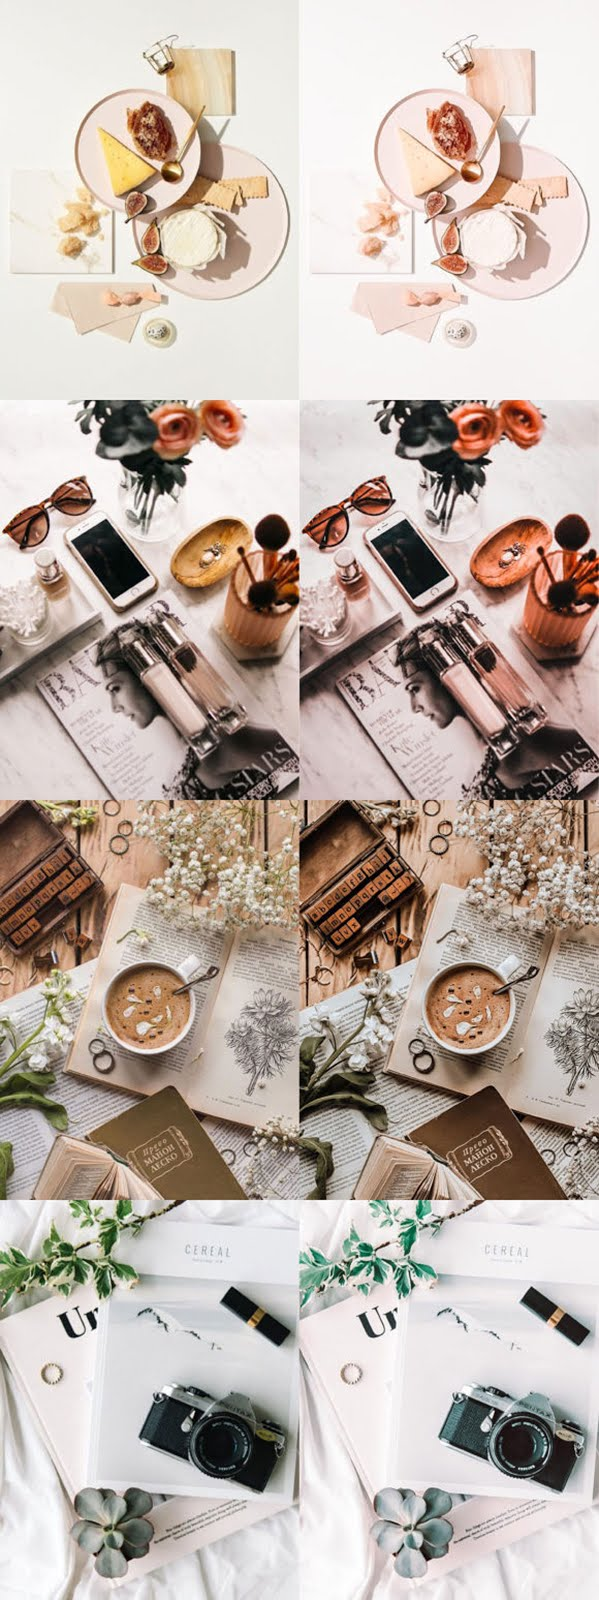 Flat Lay Product Lightroom Presets Free Download